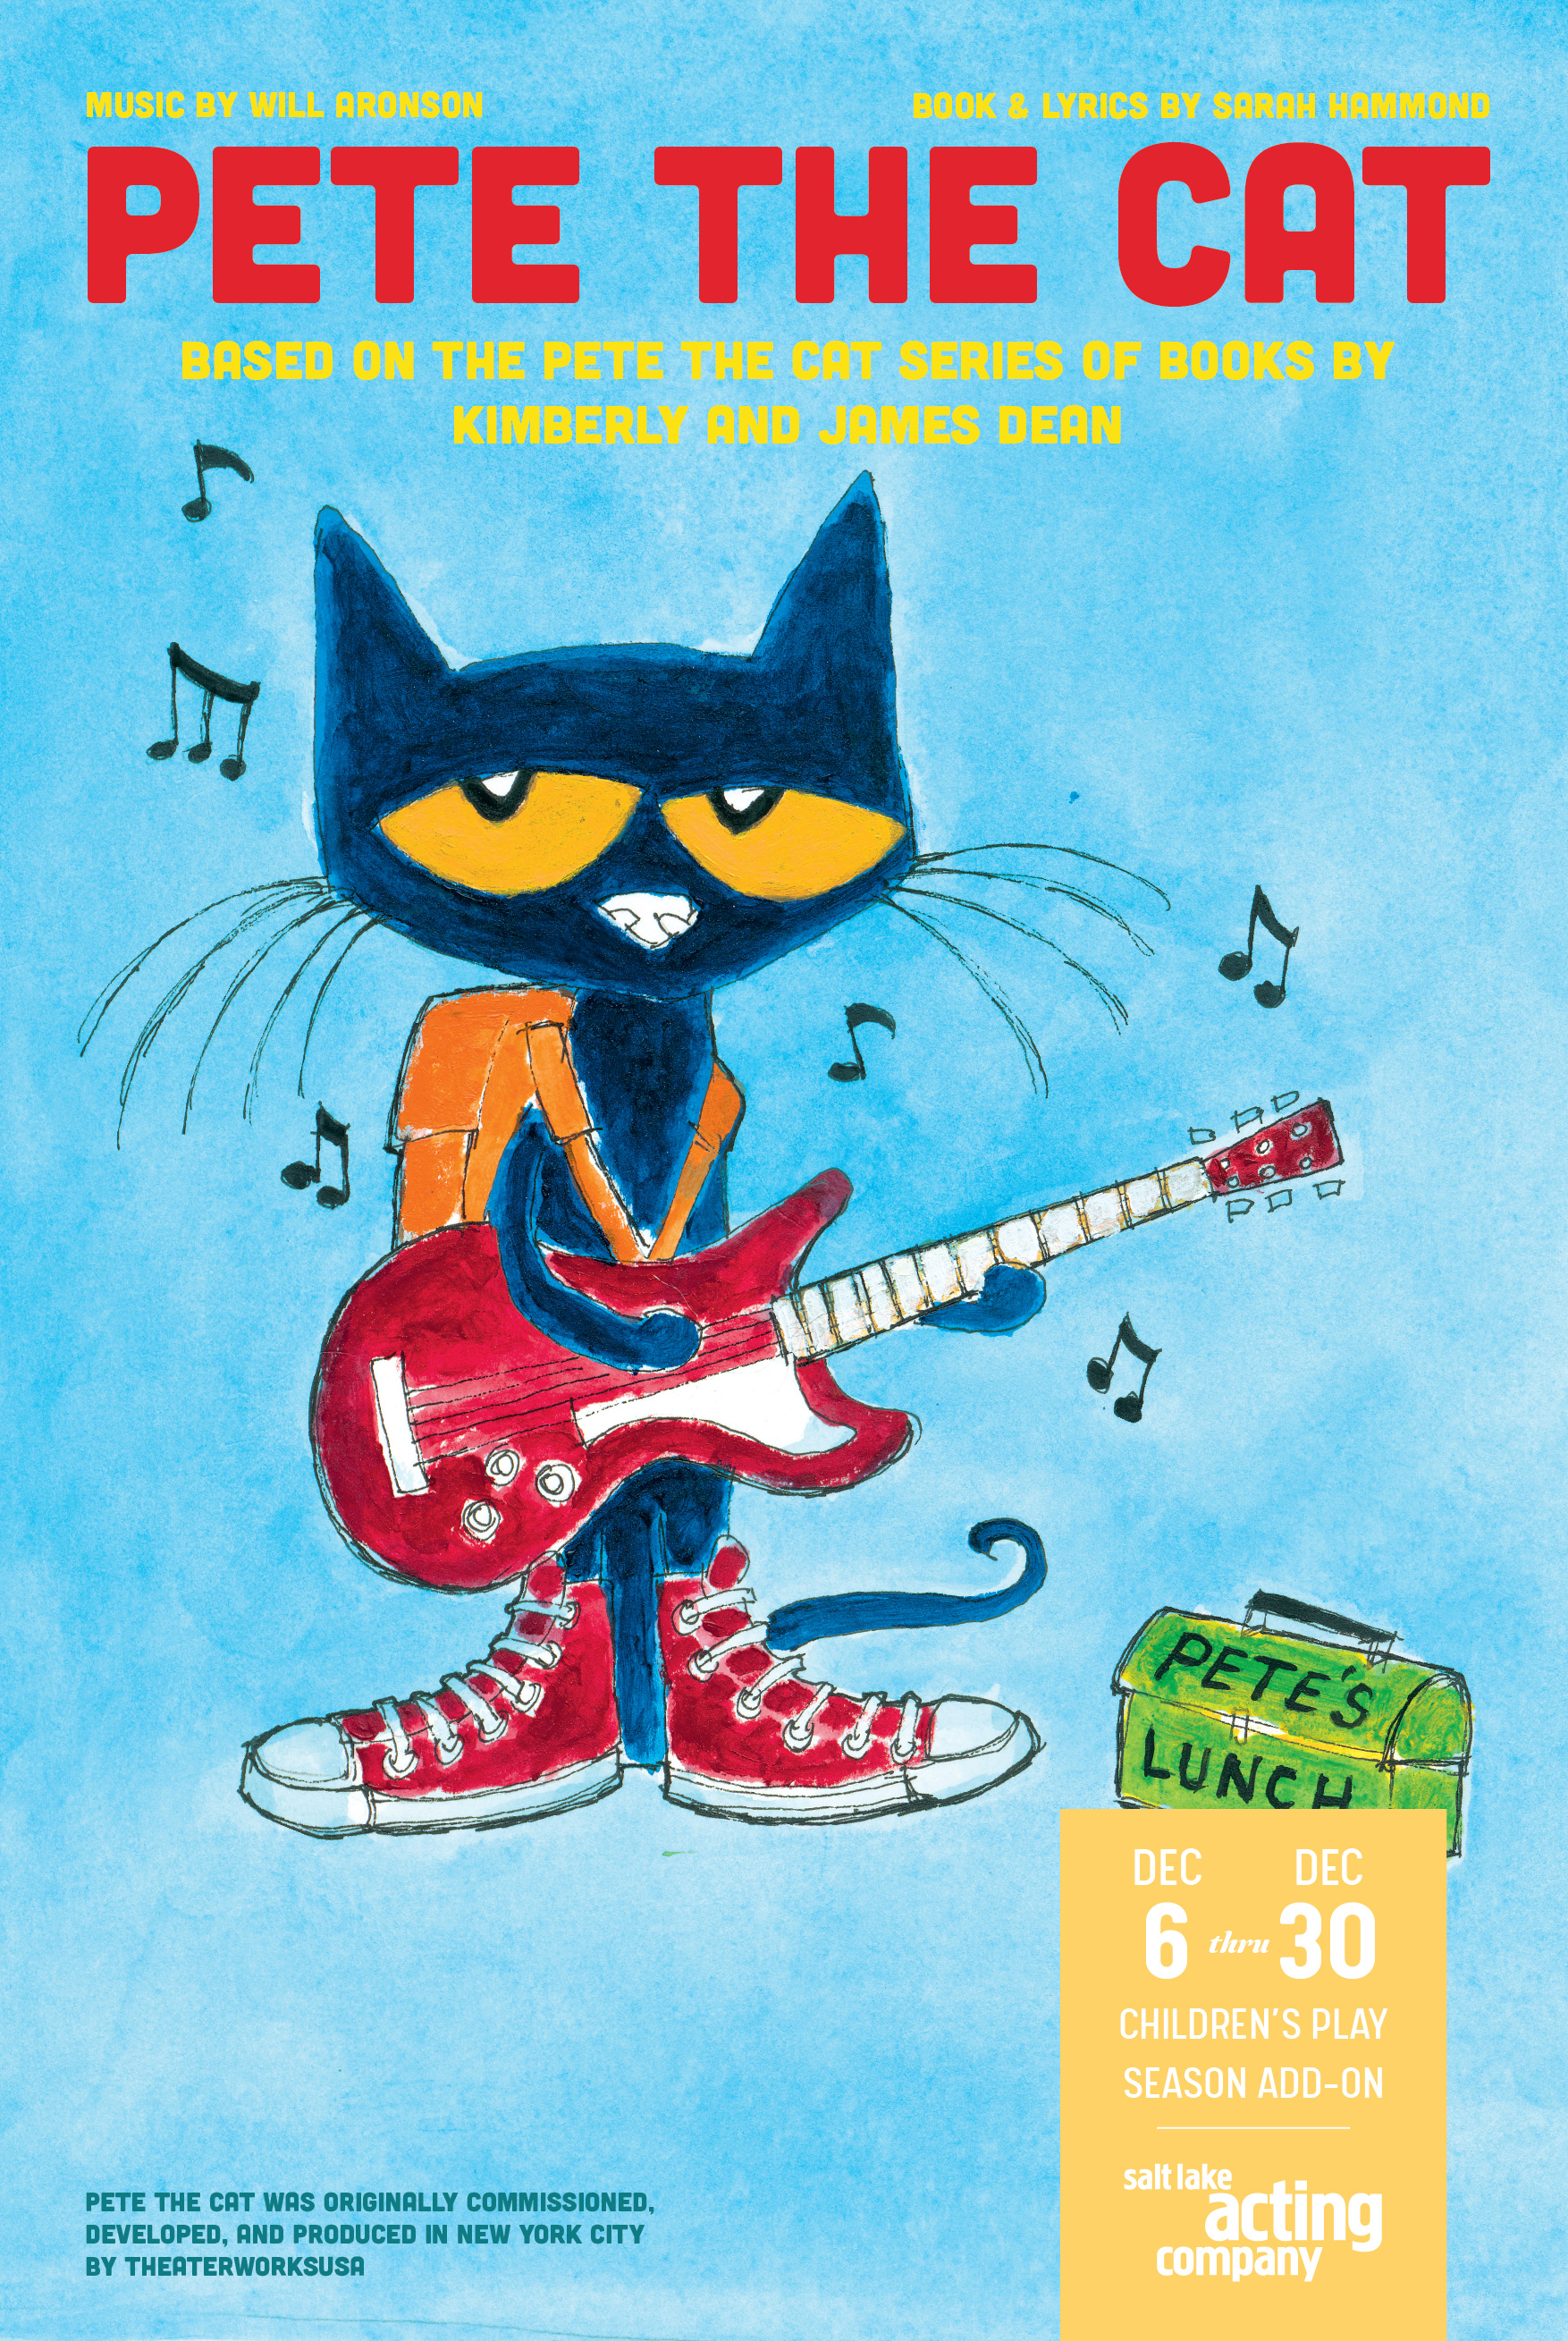 Salt Lake Acting Company Launches Second Decade of Professional Children's Theater with WITH PETE THE CAT